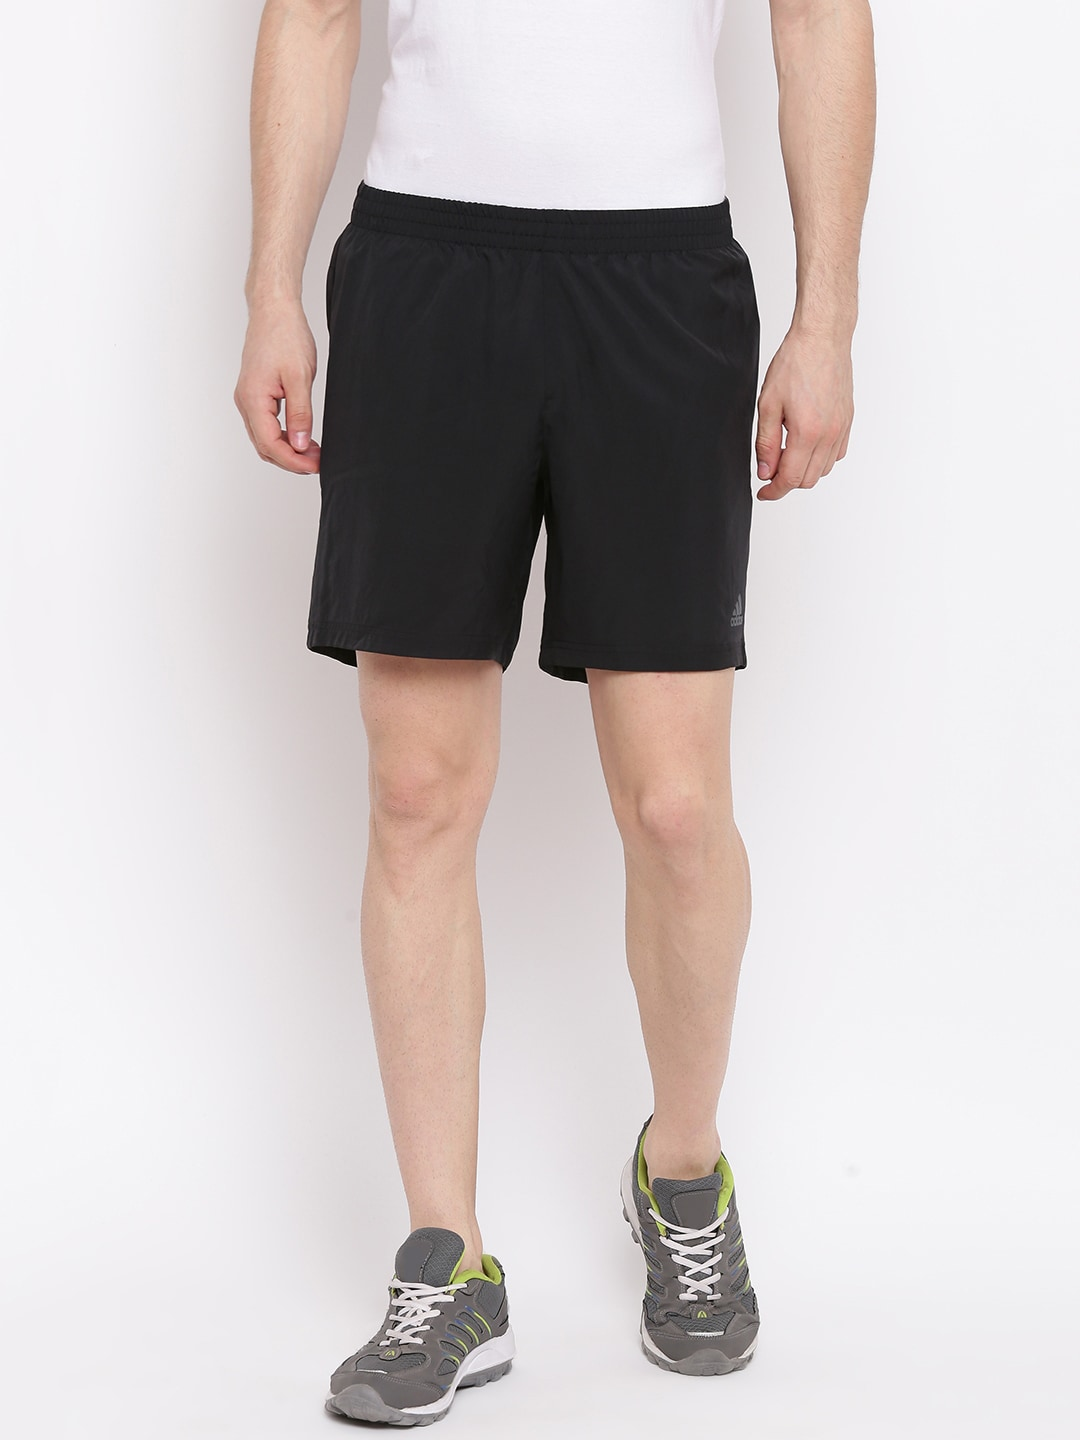 Adidas Solid Shorts Men Run It Sports Black MqSpUzGLV